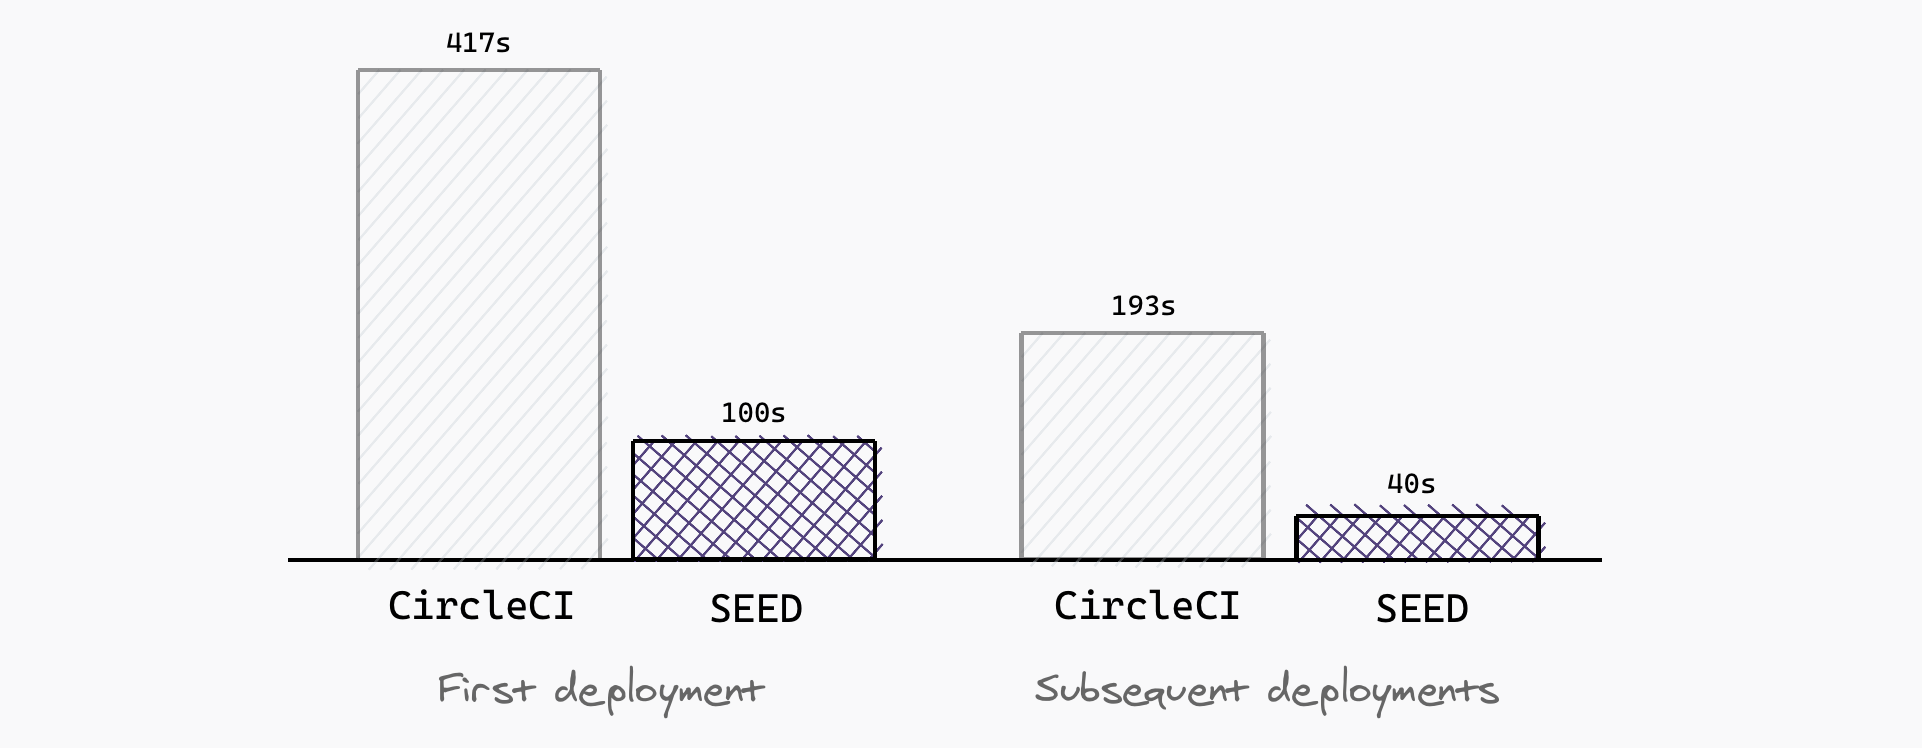 CDK deployments CircleCI vs Seed